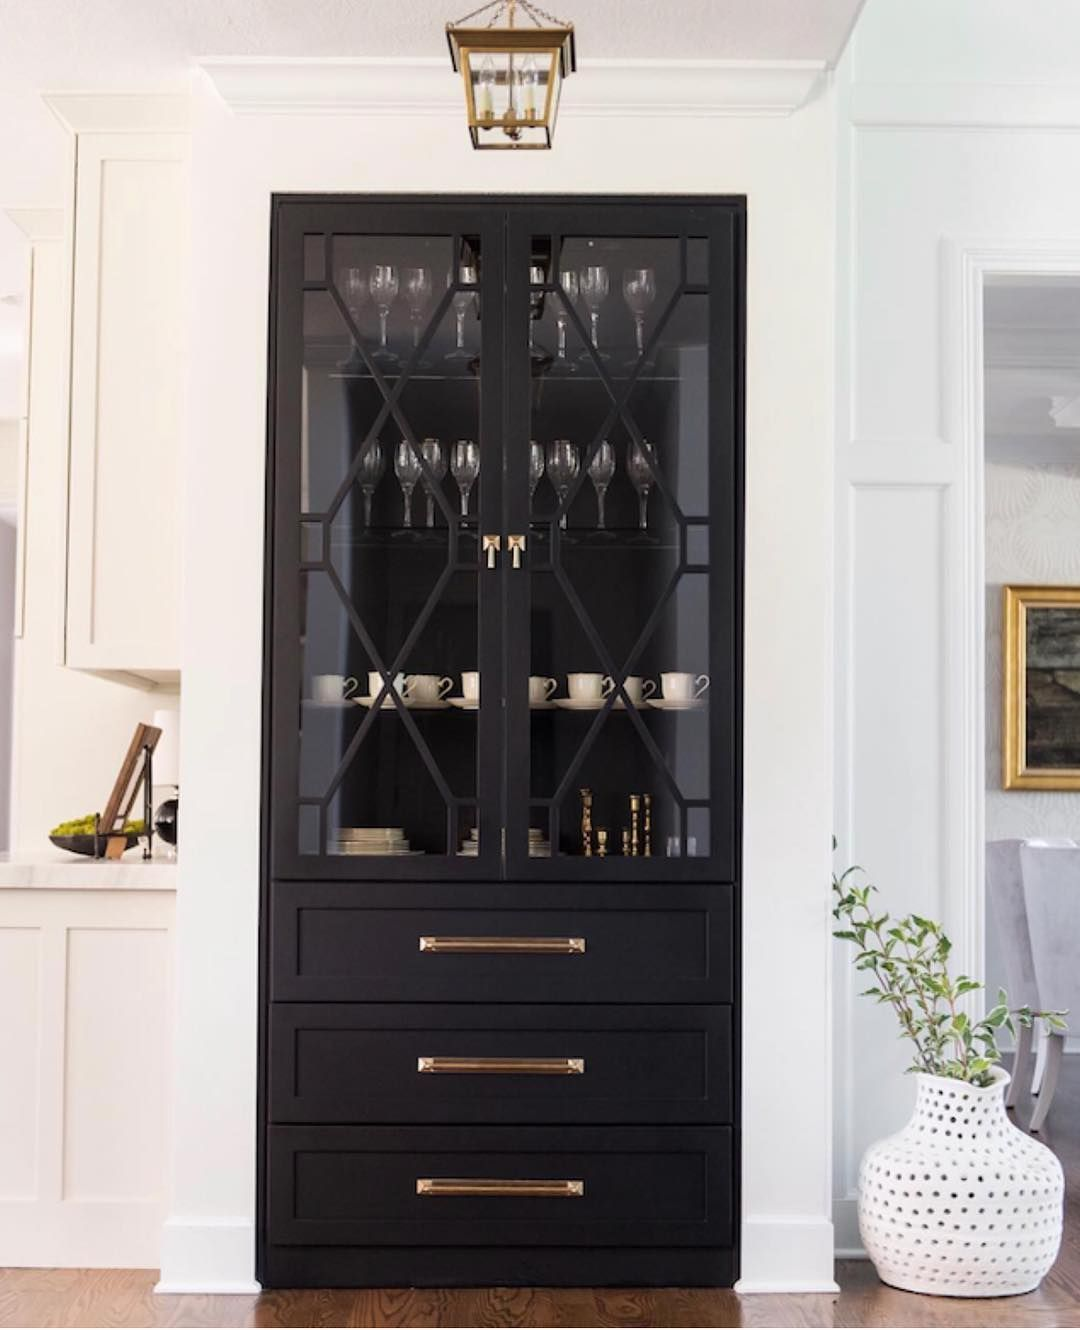 Emily A Clark On Instagram Love The Idea Of A Built In China Cabinet In The Kitchen Like This One Custom Designed By Home Decor Kitchen House Interior Home